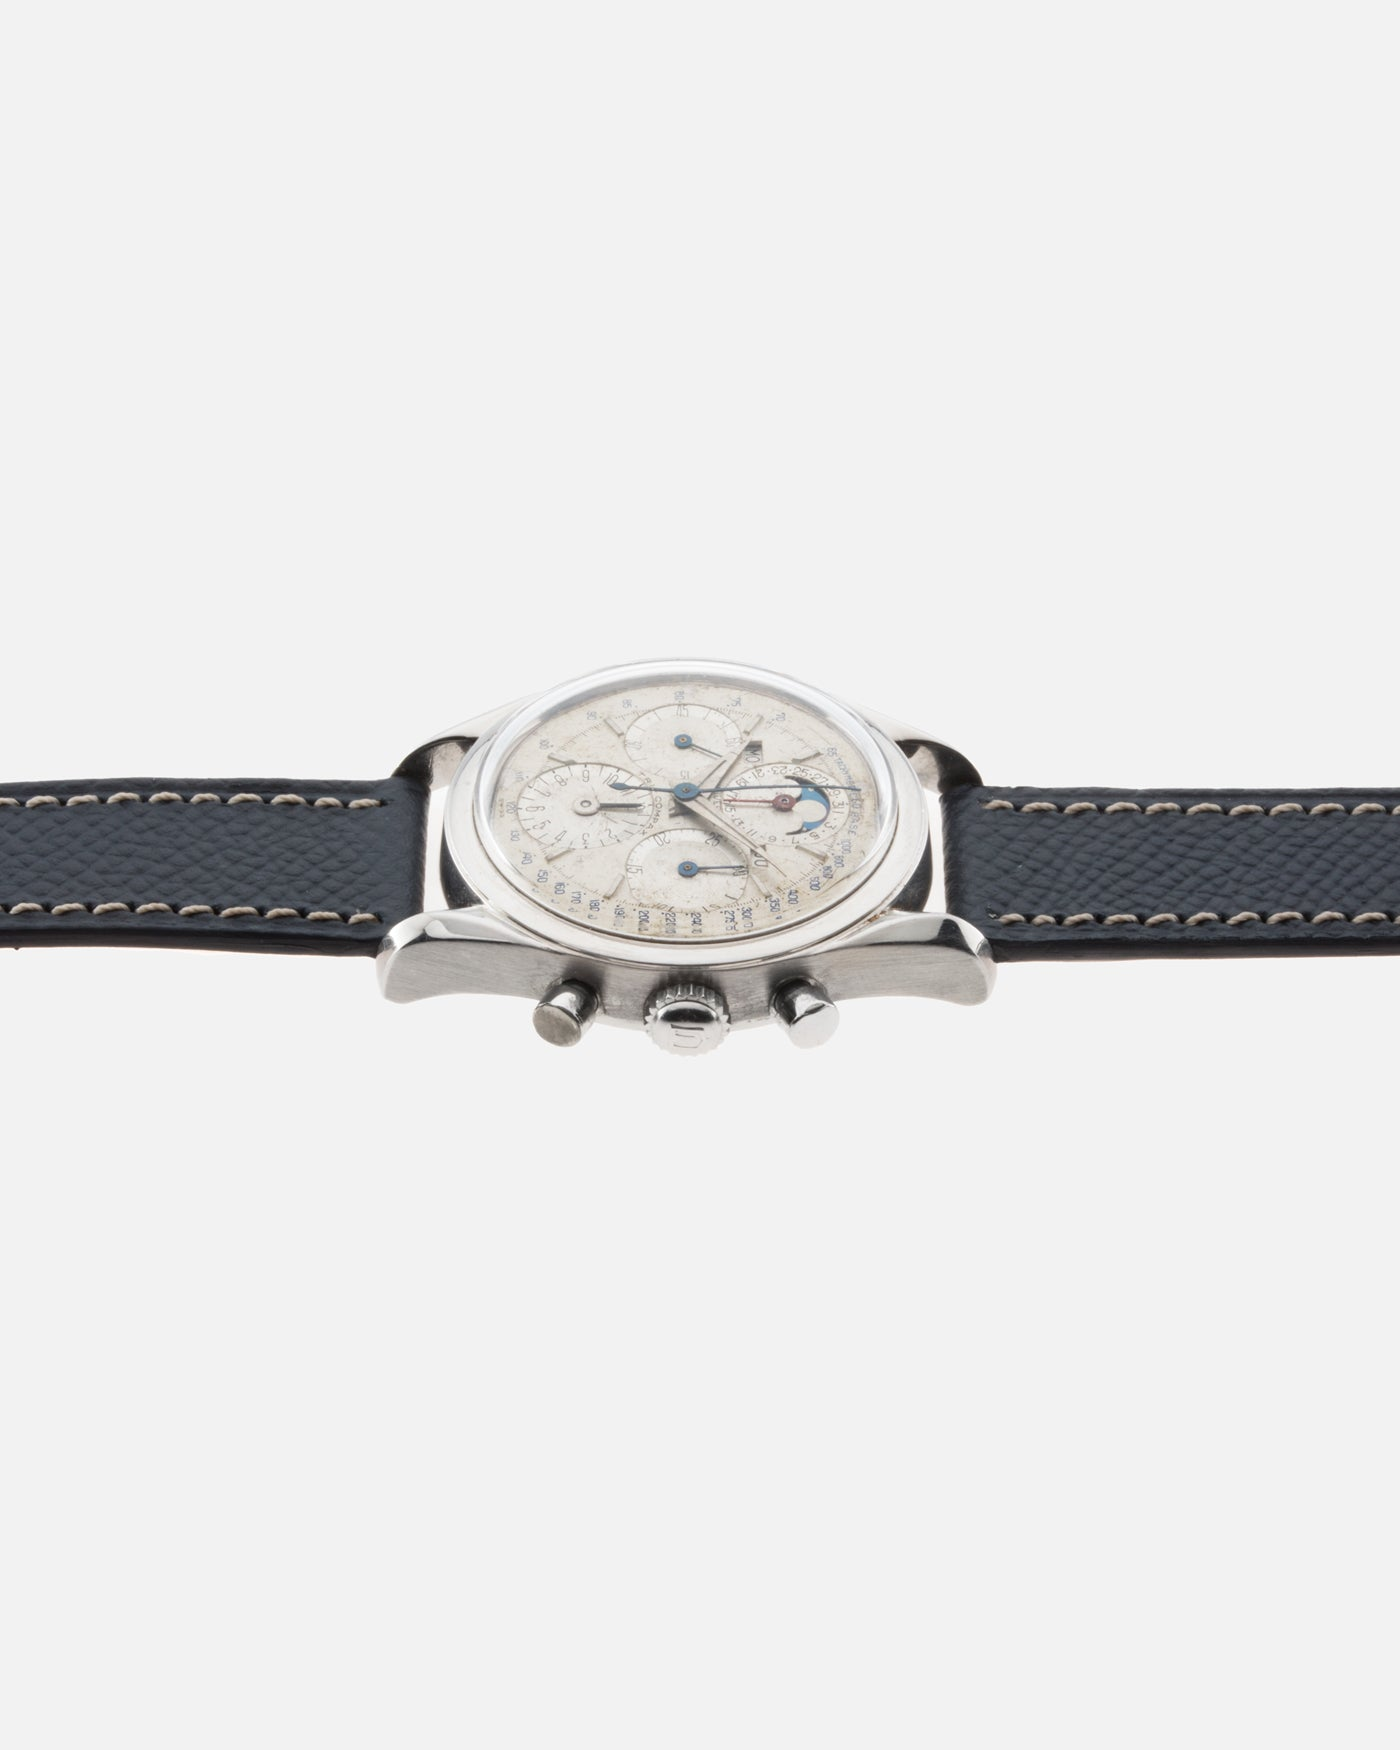 Universal Geneve Tri Compax Linen Dial